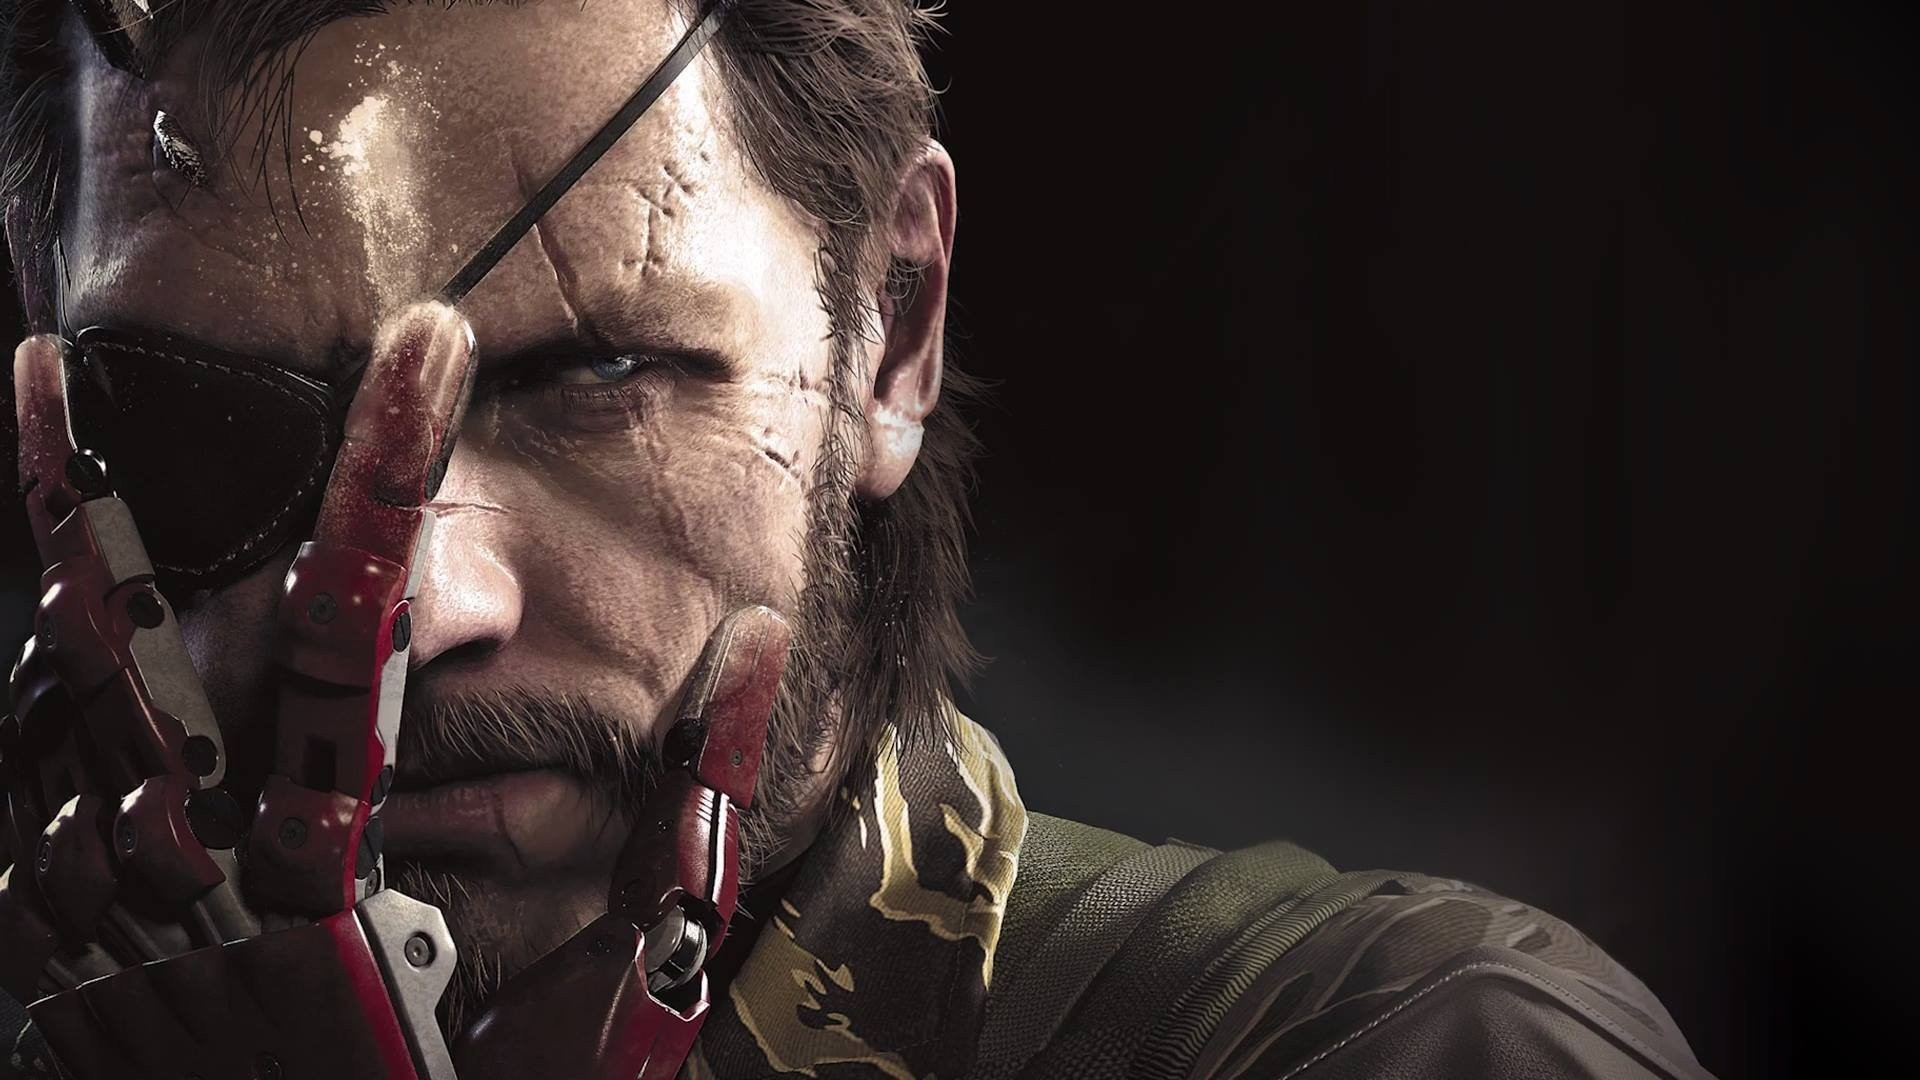 metal-gear-solid-v-the-phatnom-pain-2